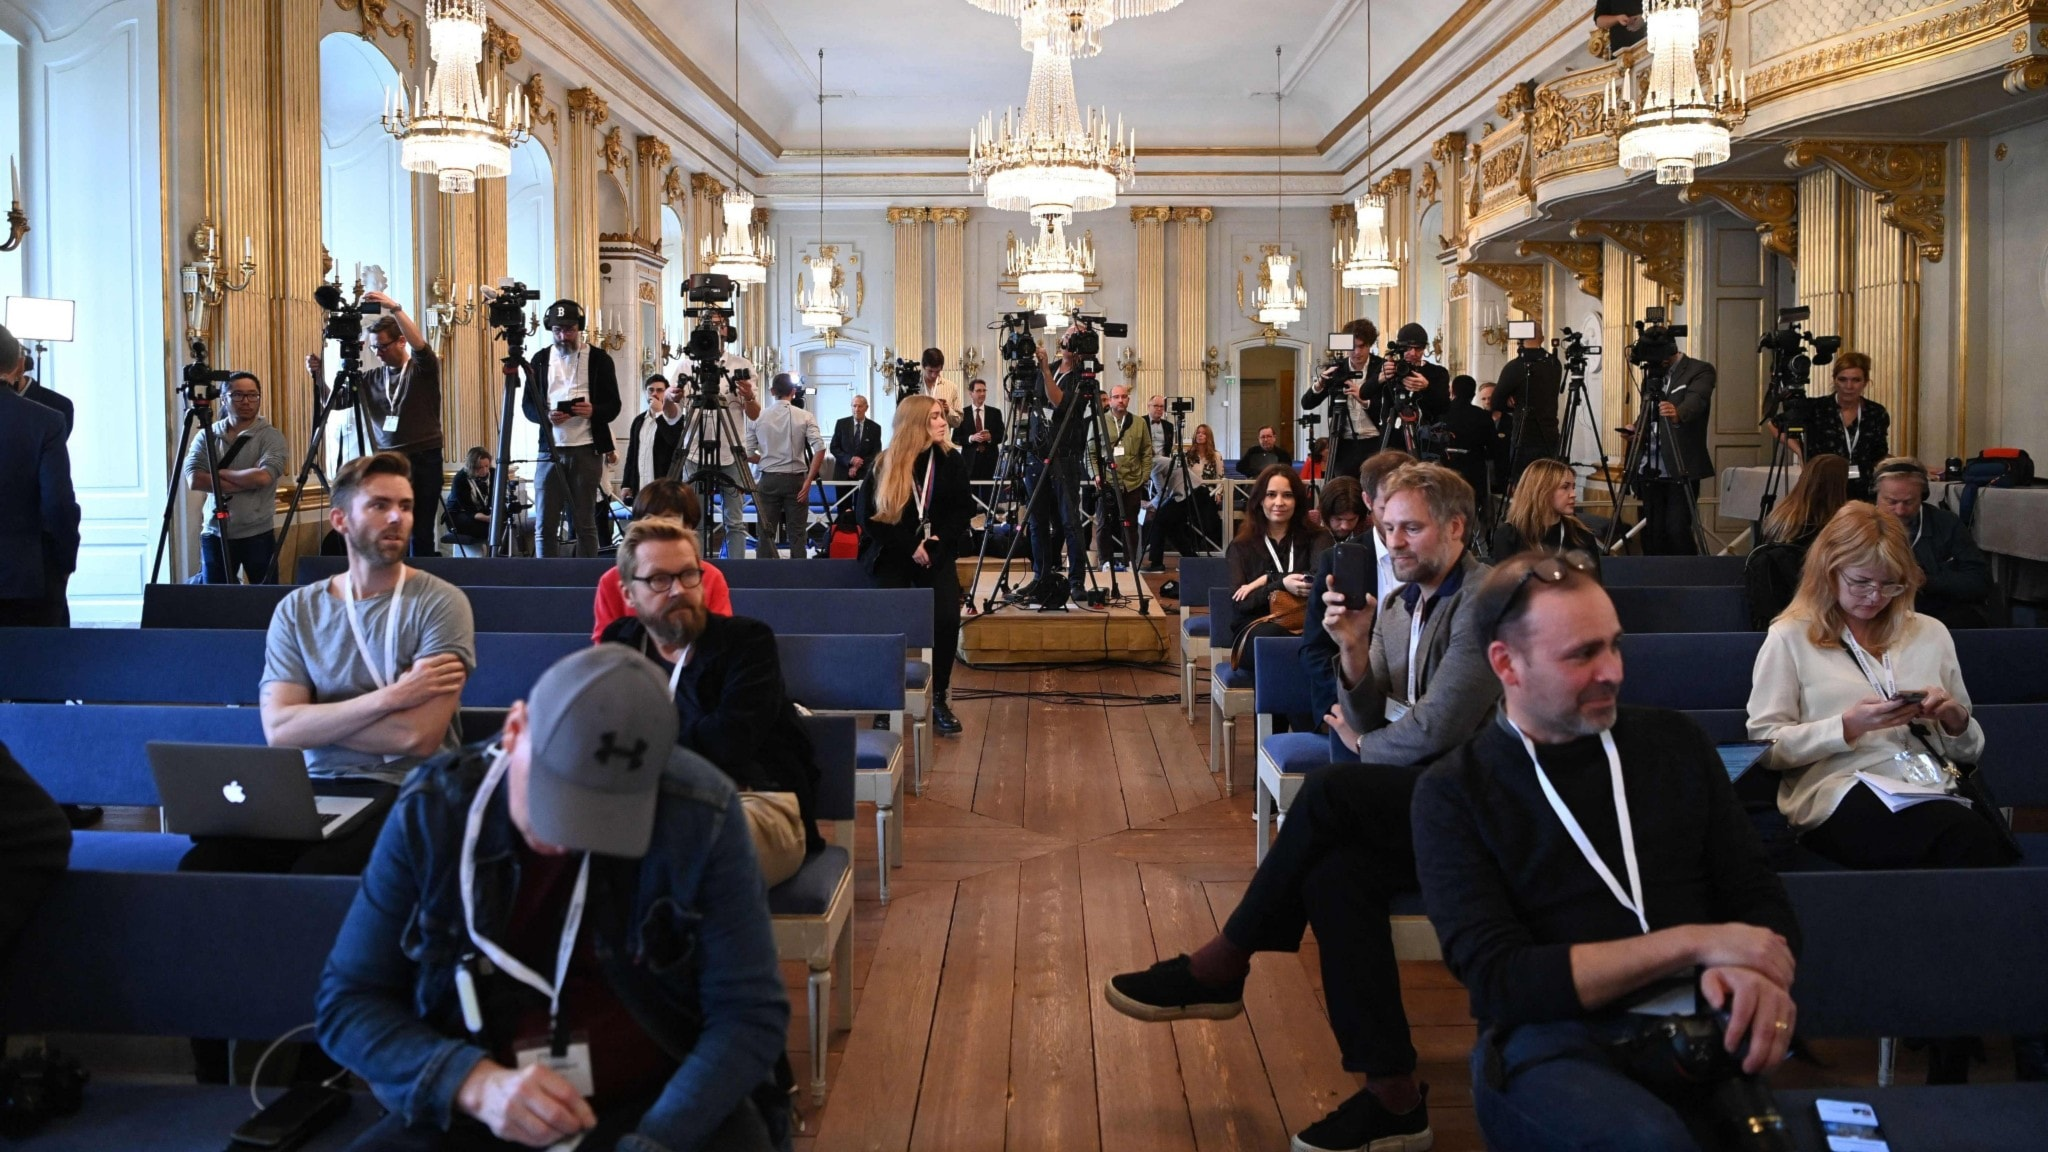 A fancy room with cameras and reporters sitting around.